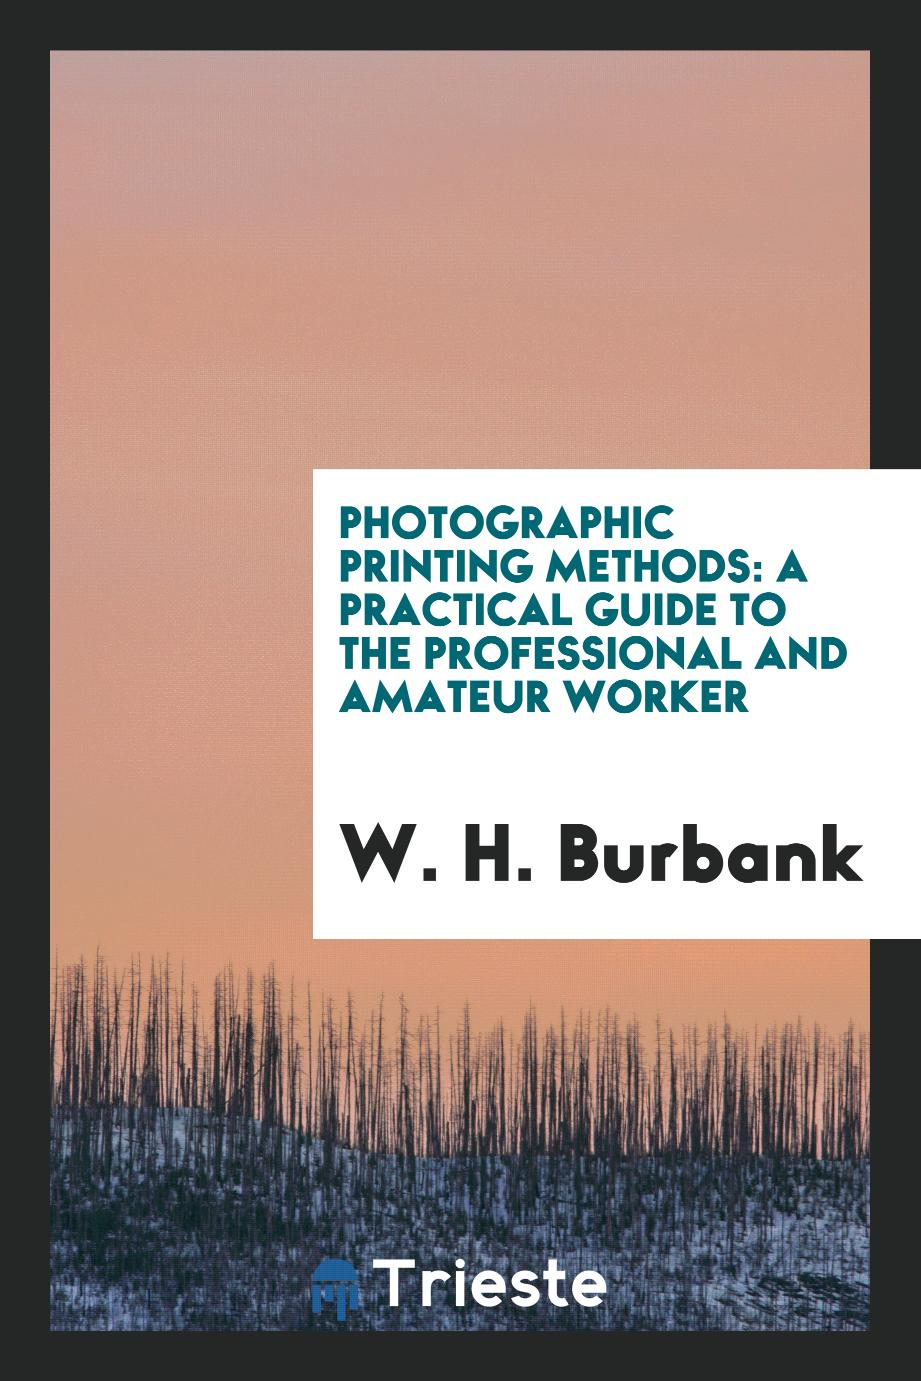 Photographic printing methods: a practical guide to the professional and amateur worker